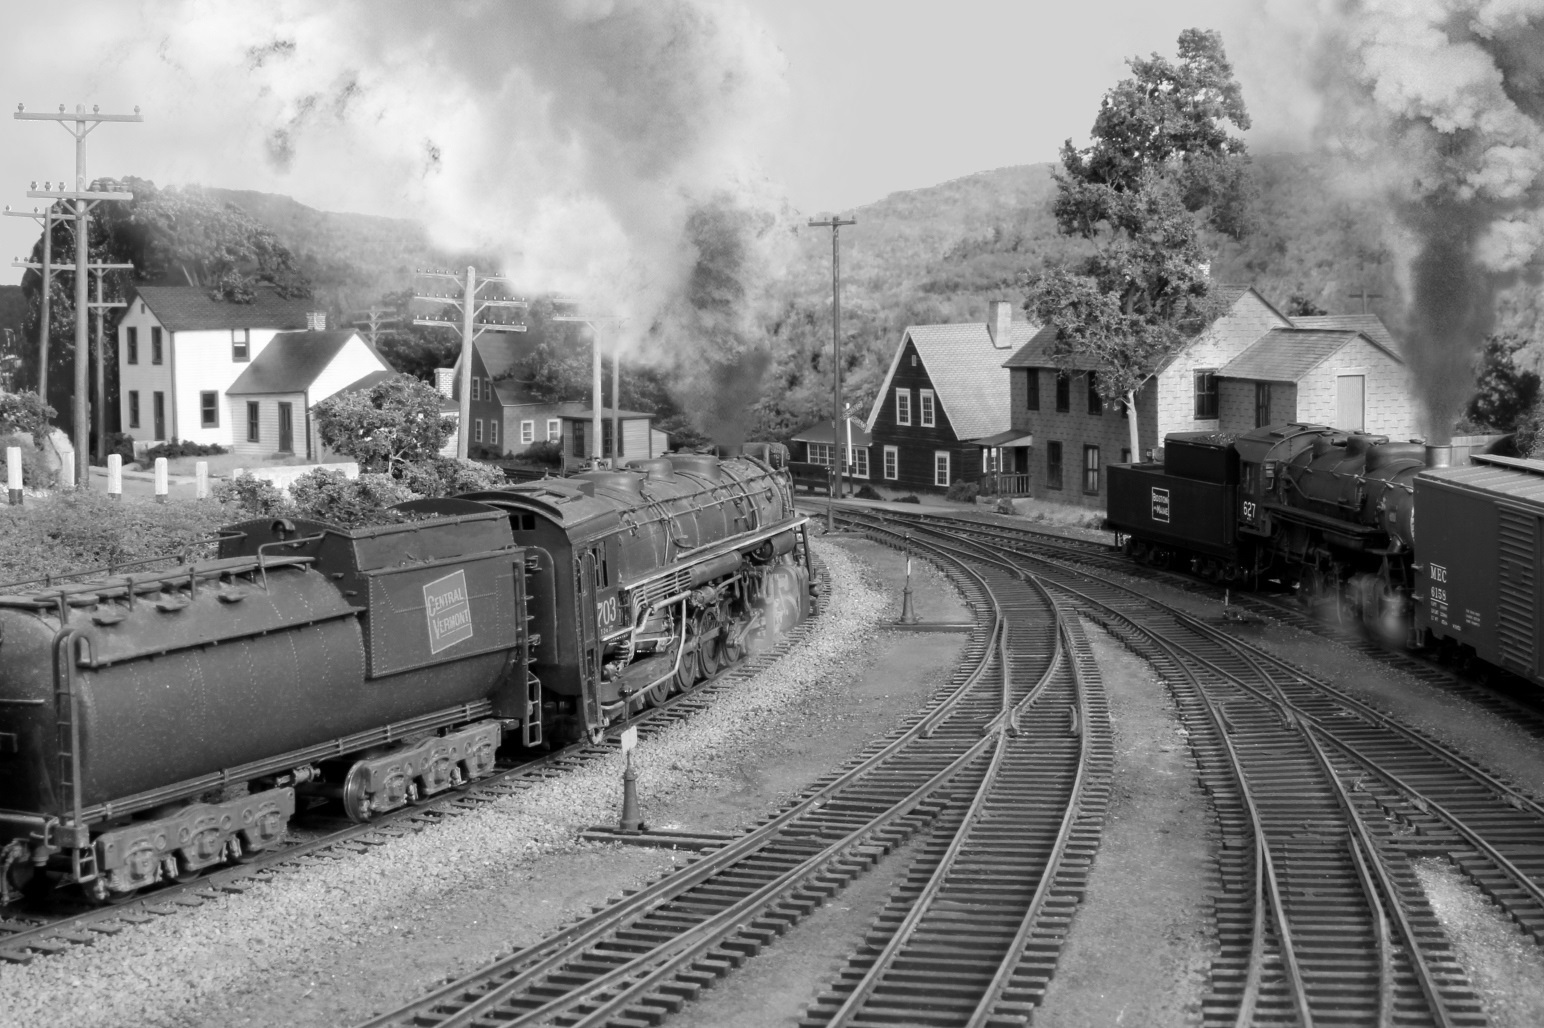 Model of B&M No. 627 (0-8-0) Class H working the north end of the White River Junction yard while CV 2-10-4 No. 703 heads towards the nearby Central Vermont yard. No. 627 - Proto 2000, re-detailed and renumbered. No. 703 - Pacific Fast Mail. Submitted by Bernie Brown, Nov. 7, 2014. Boston & Maine Railroad Historical Society Archives digital image. Photo 433